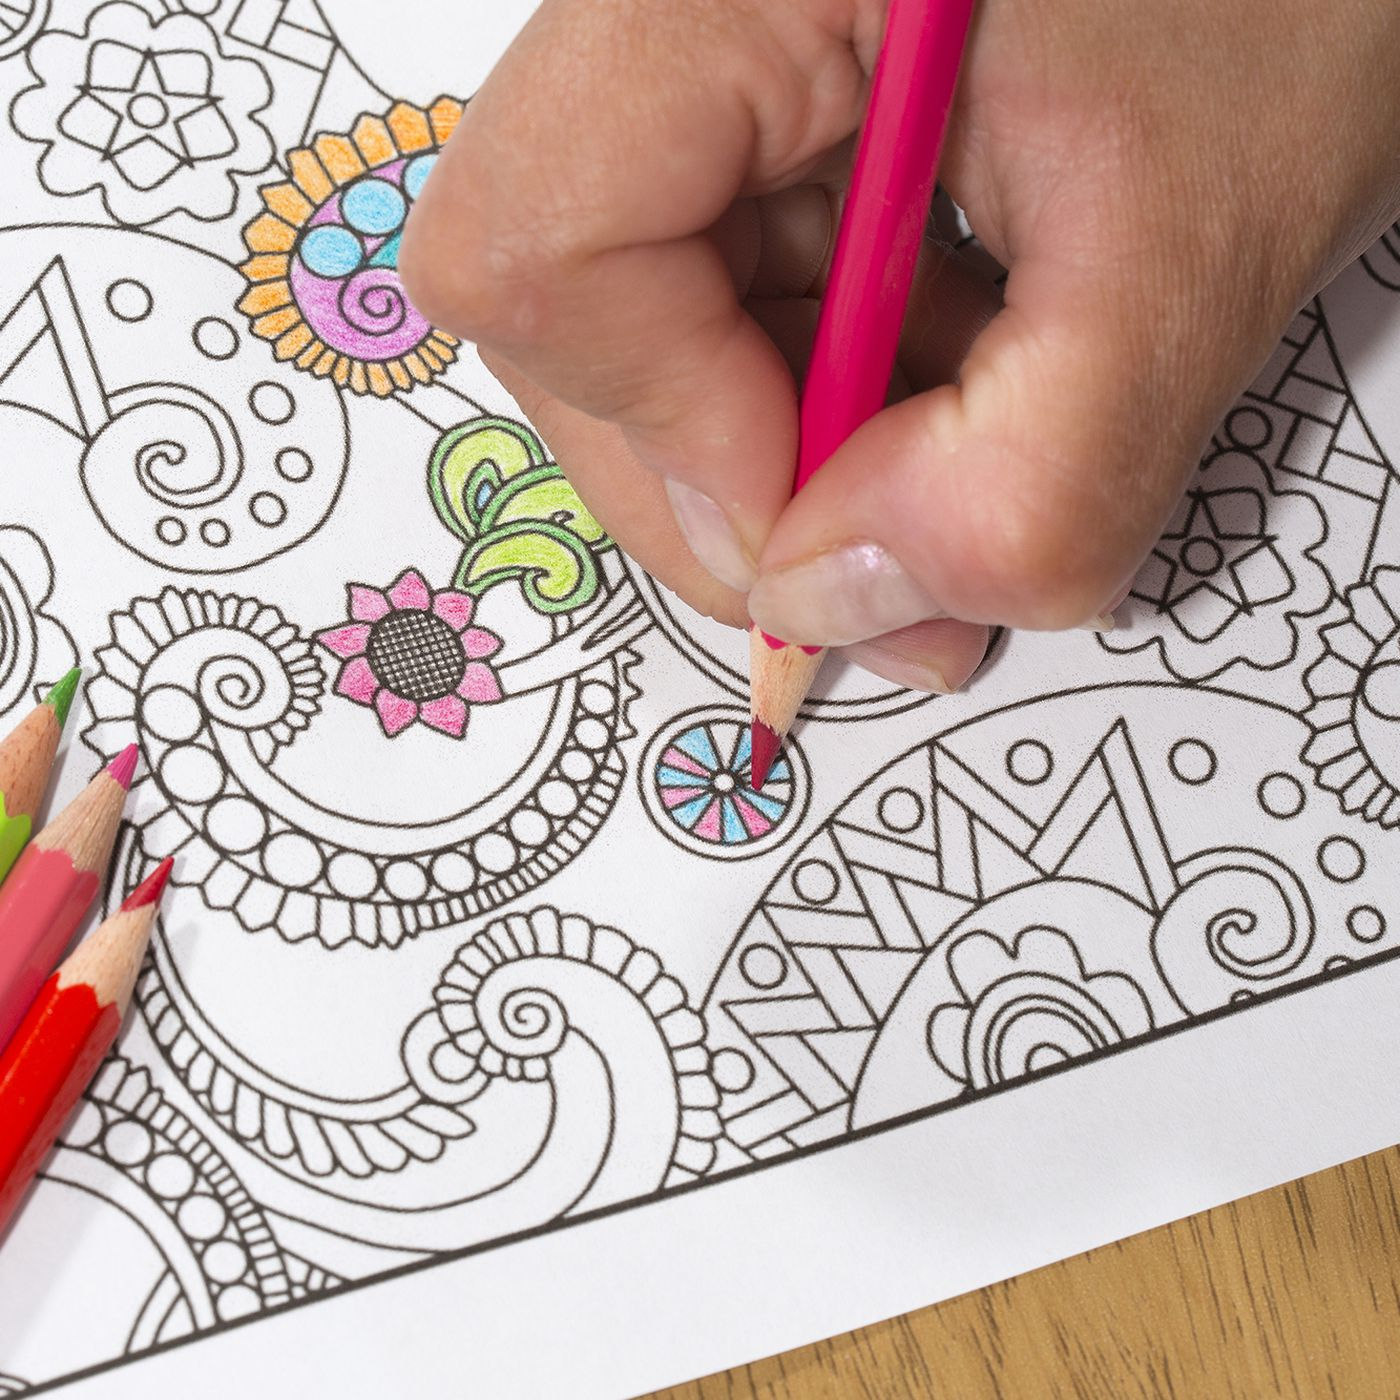 Adult coloring books are selling like crazy. Here\'s why. - Vox